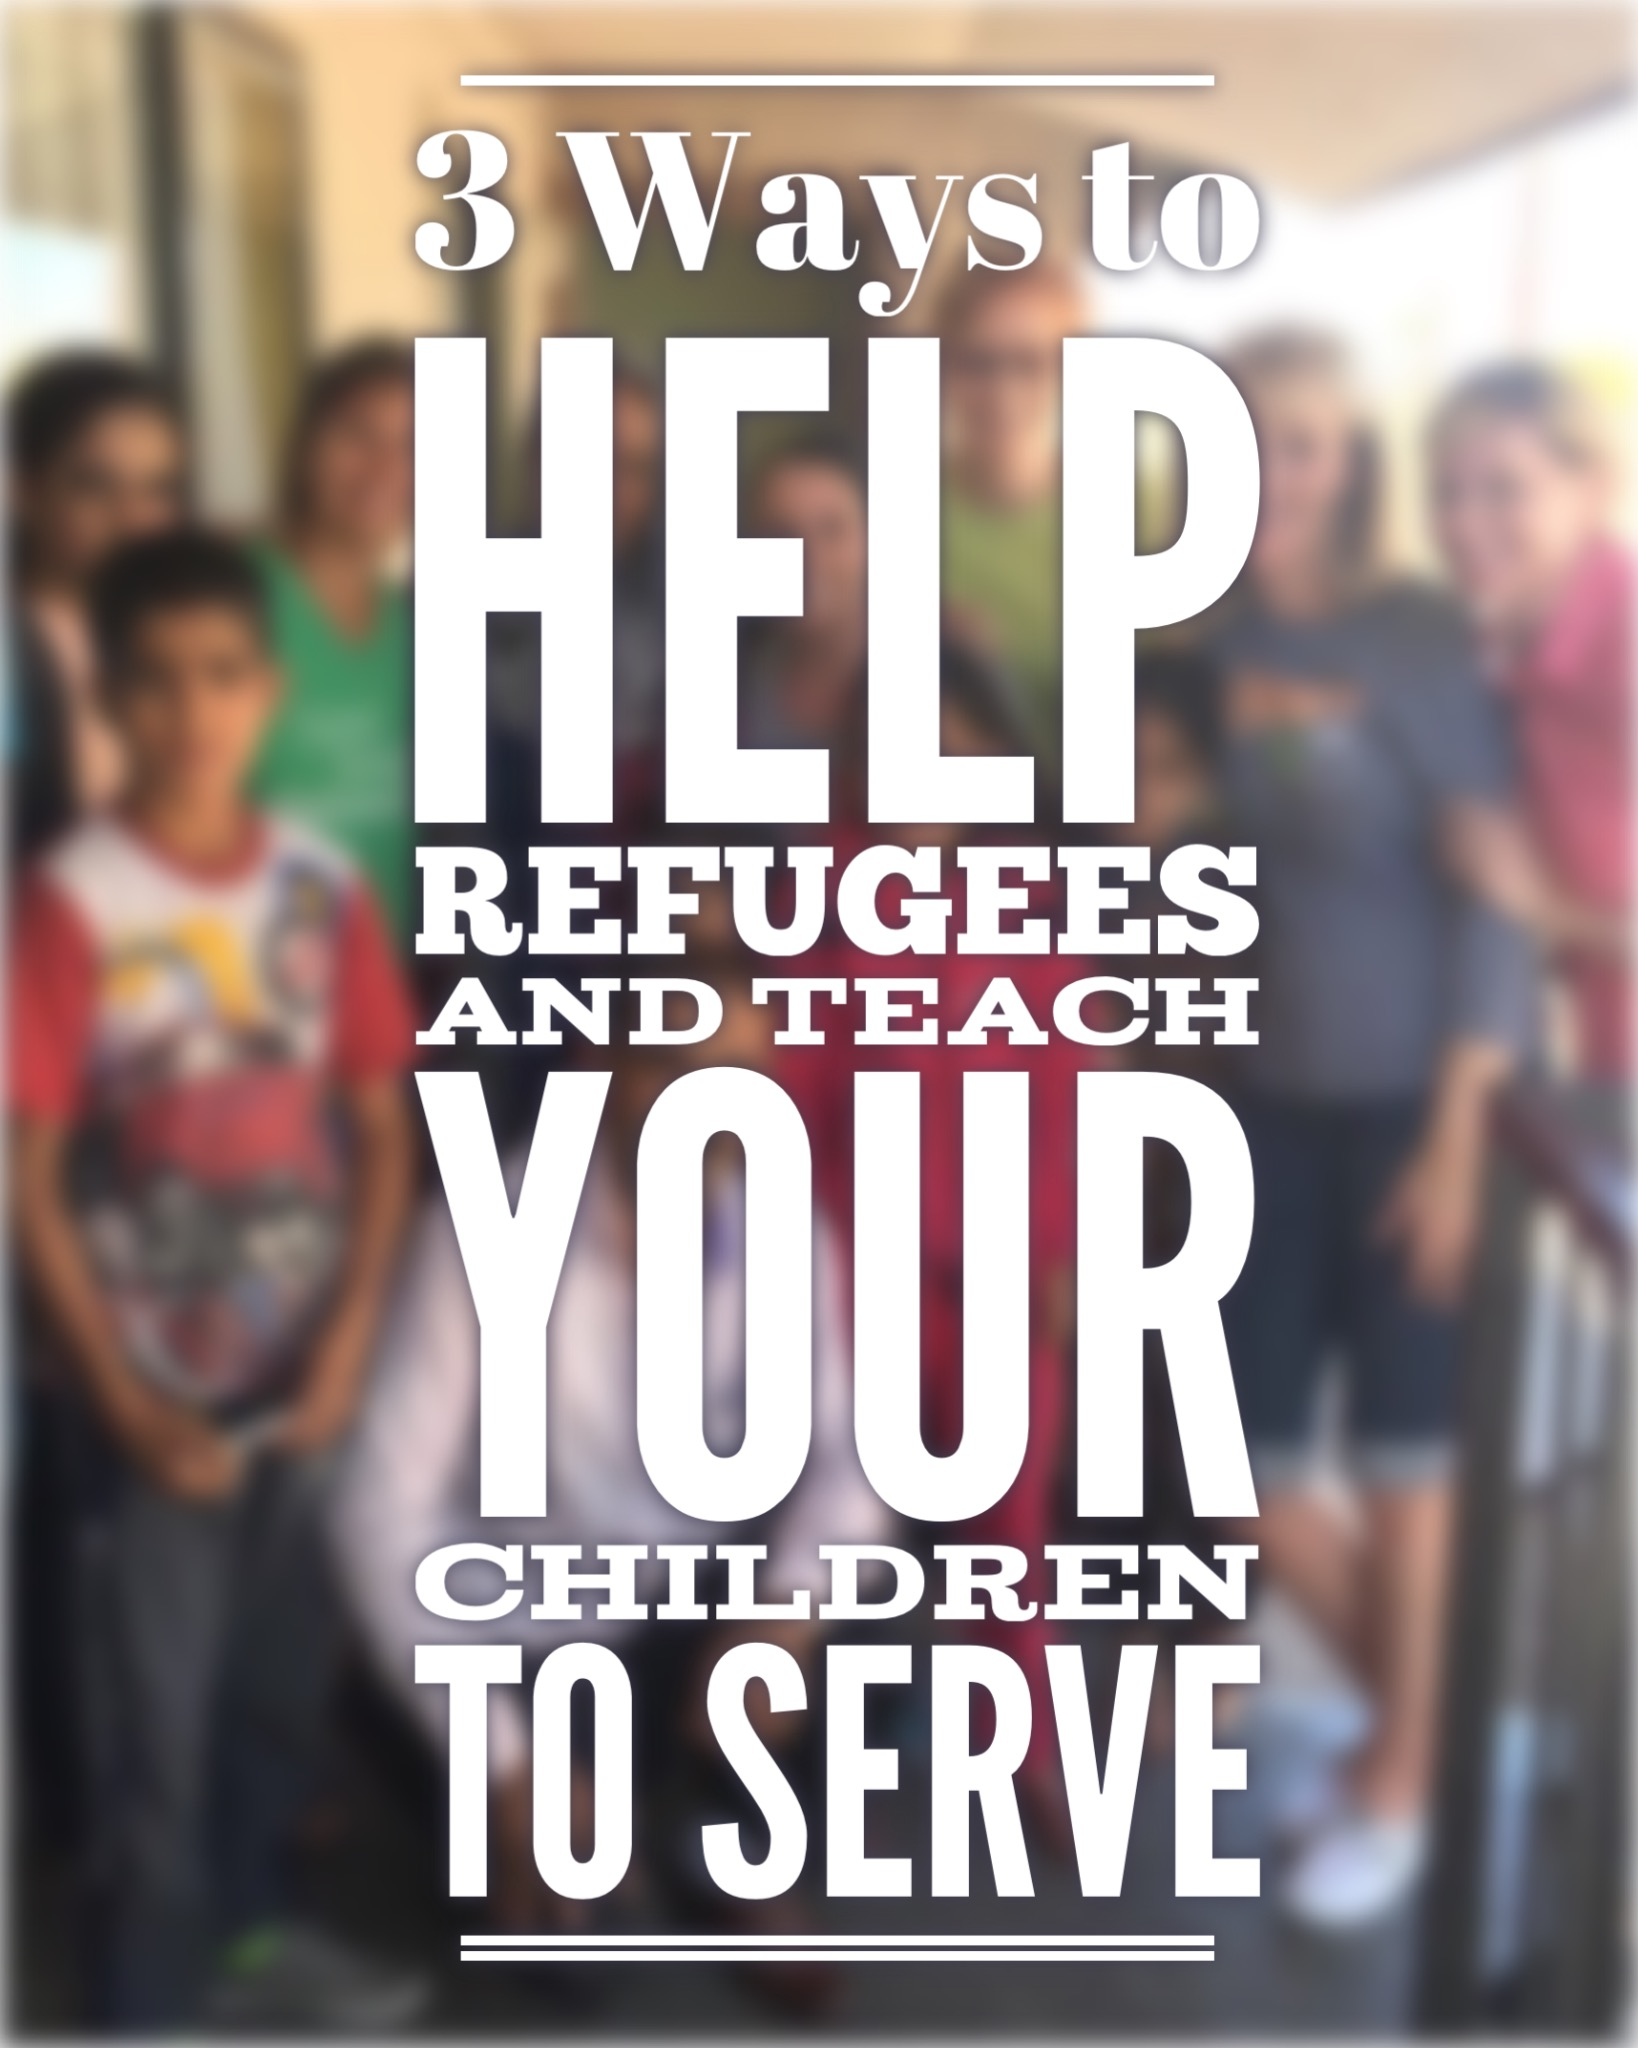 3 Ways to Help Refugees and Teach Your Children about Service